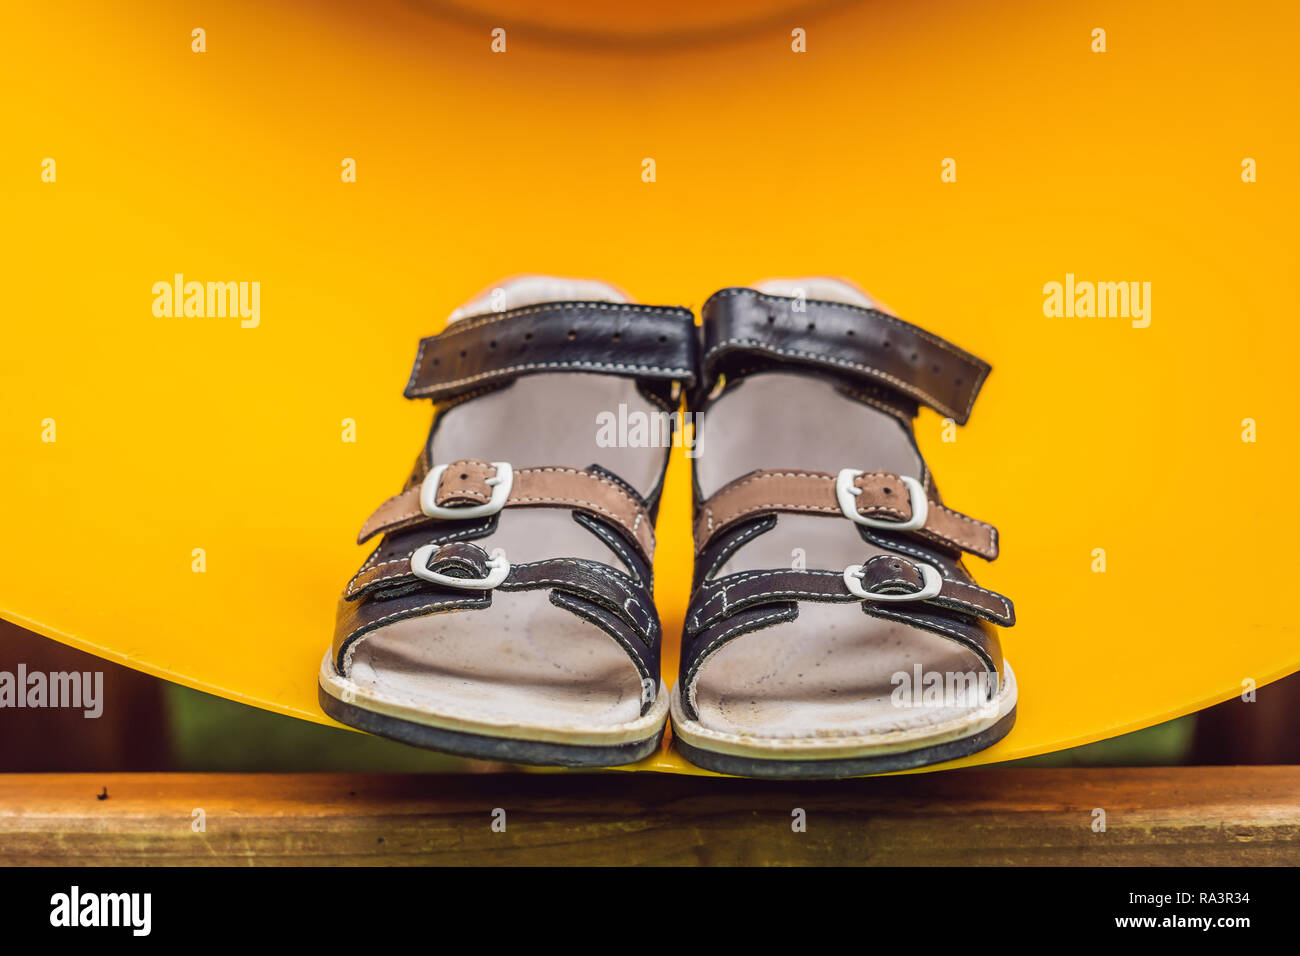 children's orthopedic shoes. Thomas Heel, arch support - Stock Image